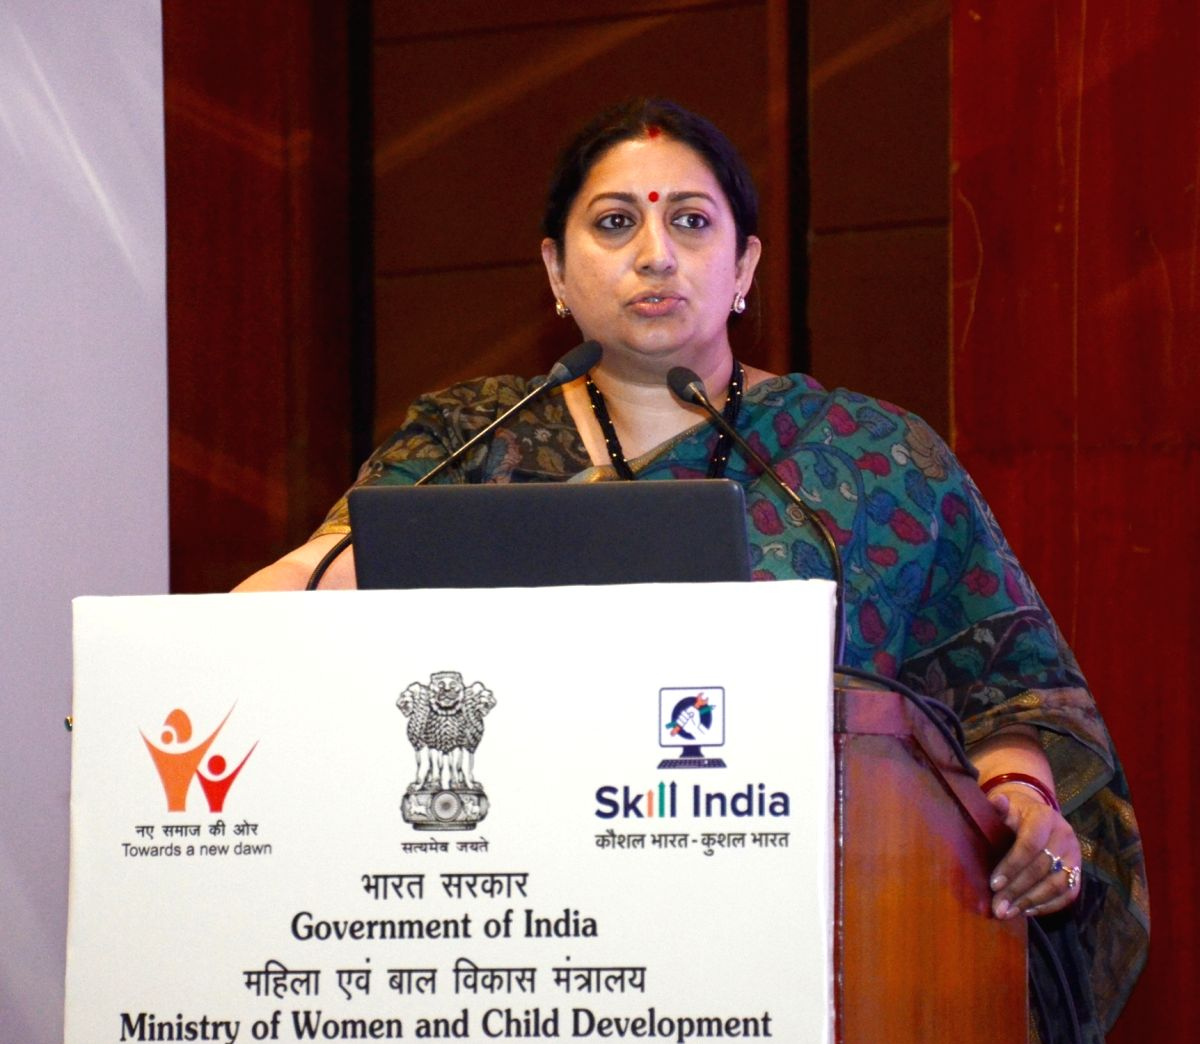 New Delhi: Union Minister for Women & Child Development and Textiles Smriti Irani addresses at the valedictory session of the National Conference on Policy Framework for Skilling of Women and Children, in New Delhi on Feb 14, 2020. (Photo: IANS/PIB)